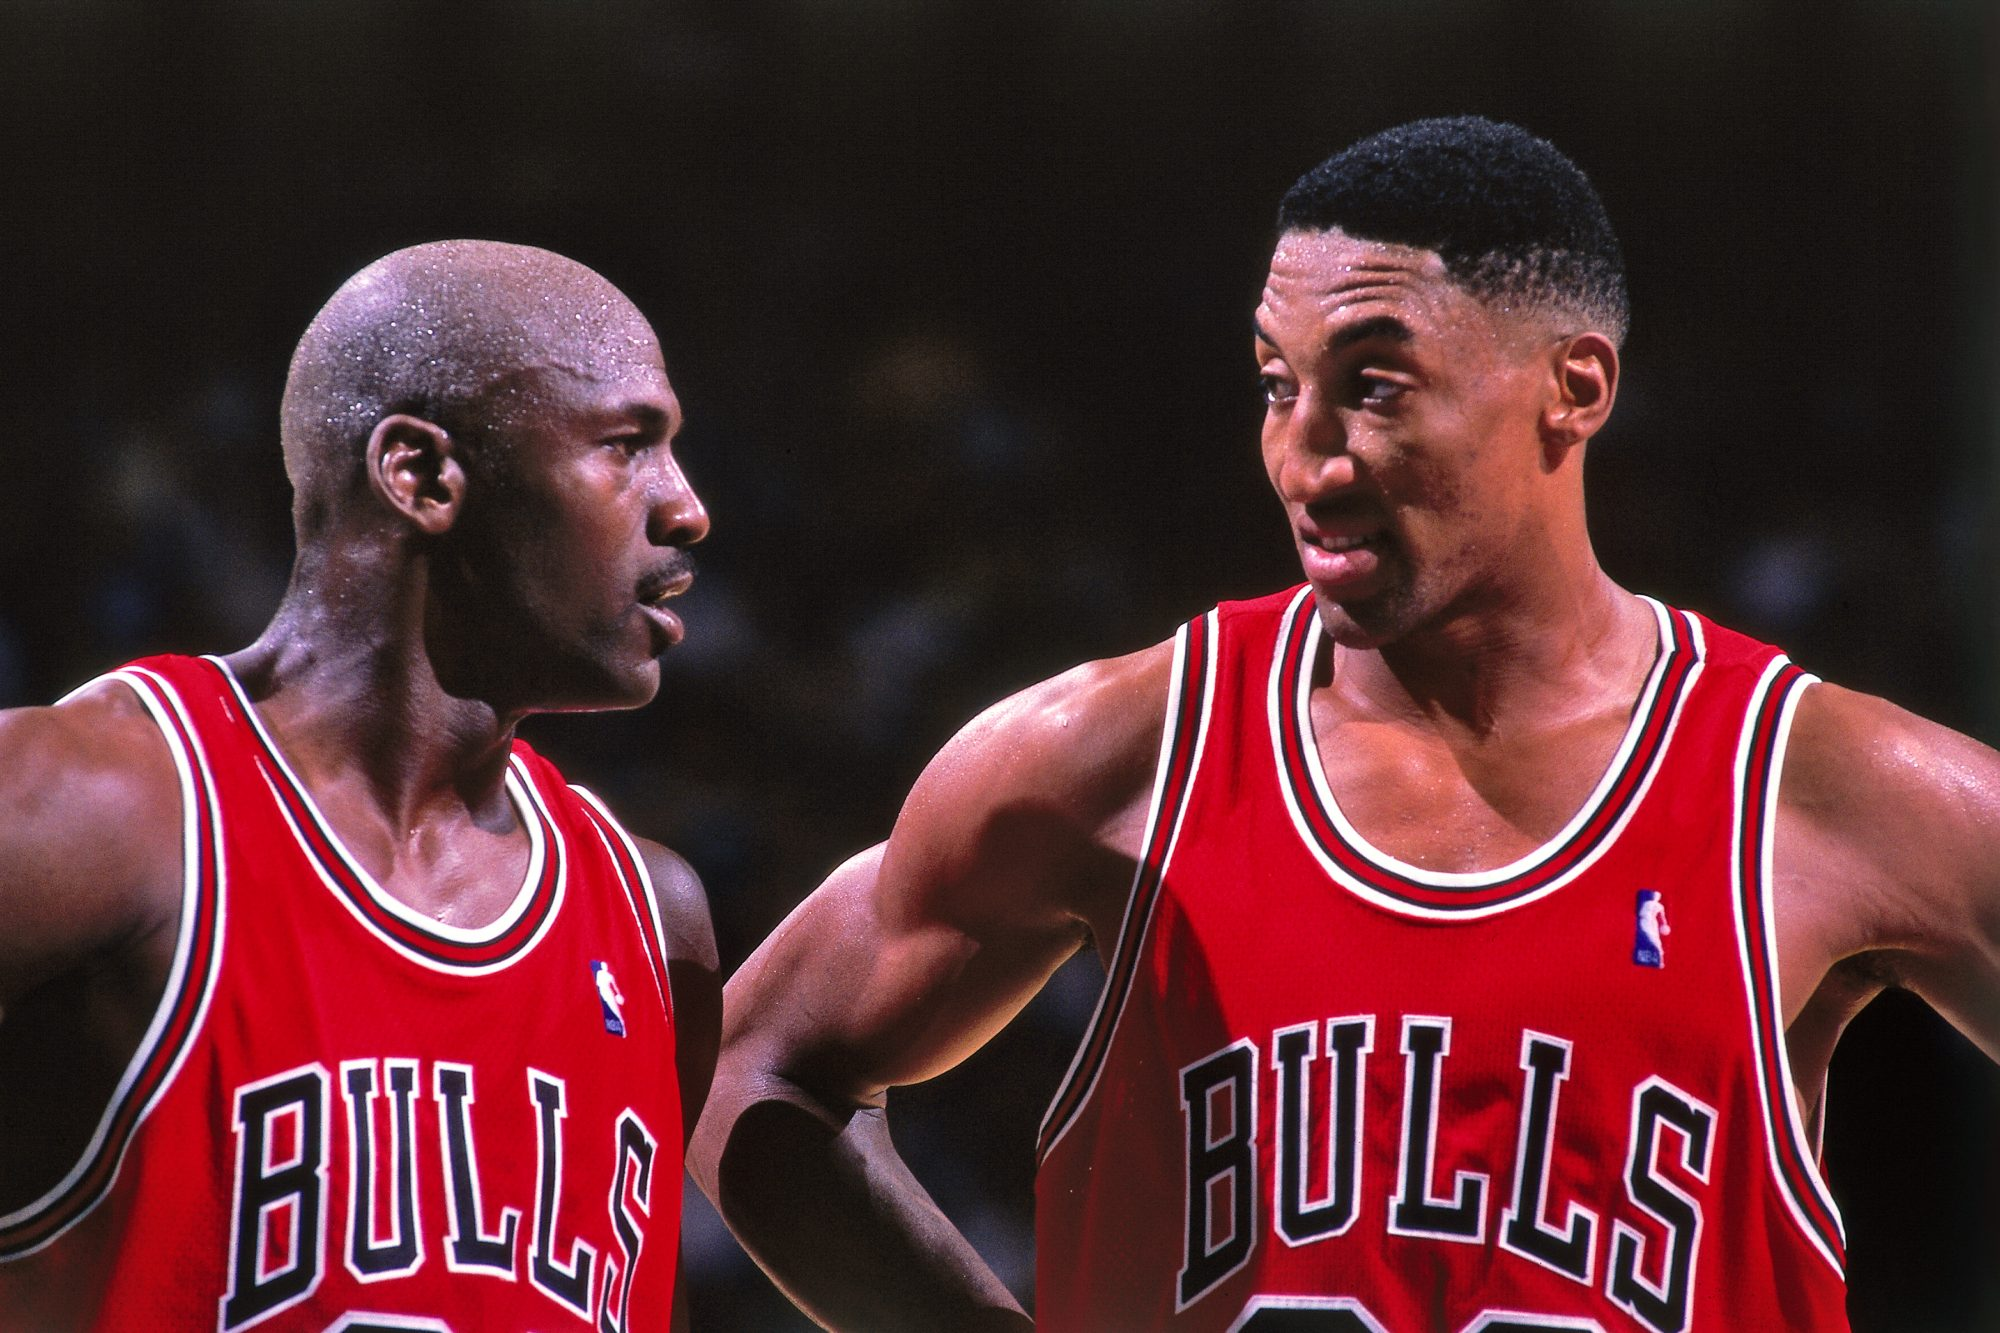 Michael Jordan y Scottie Pippens